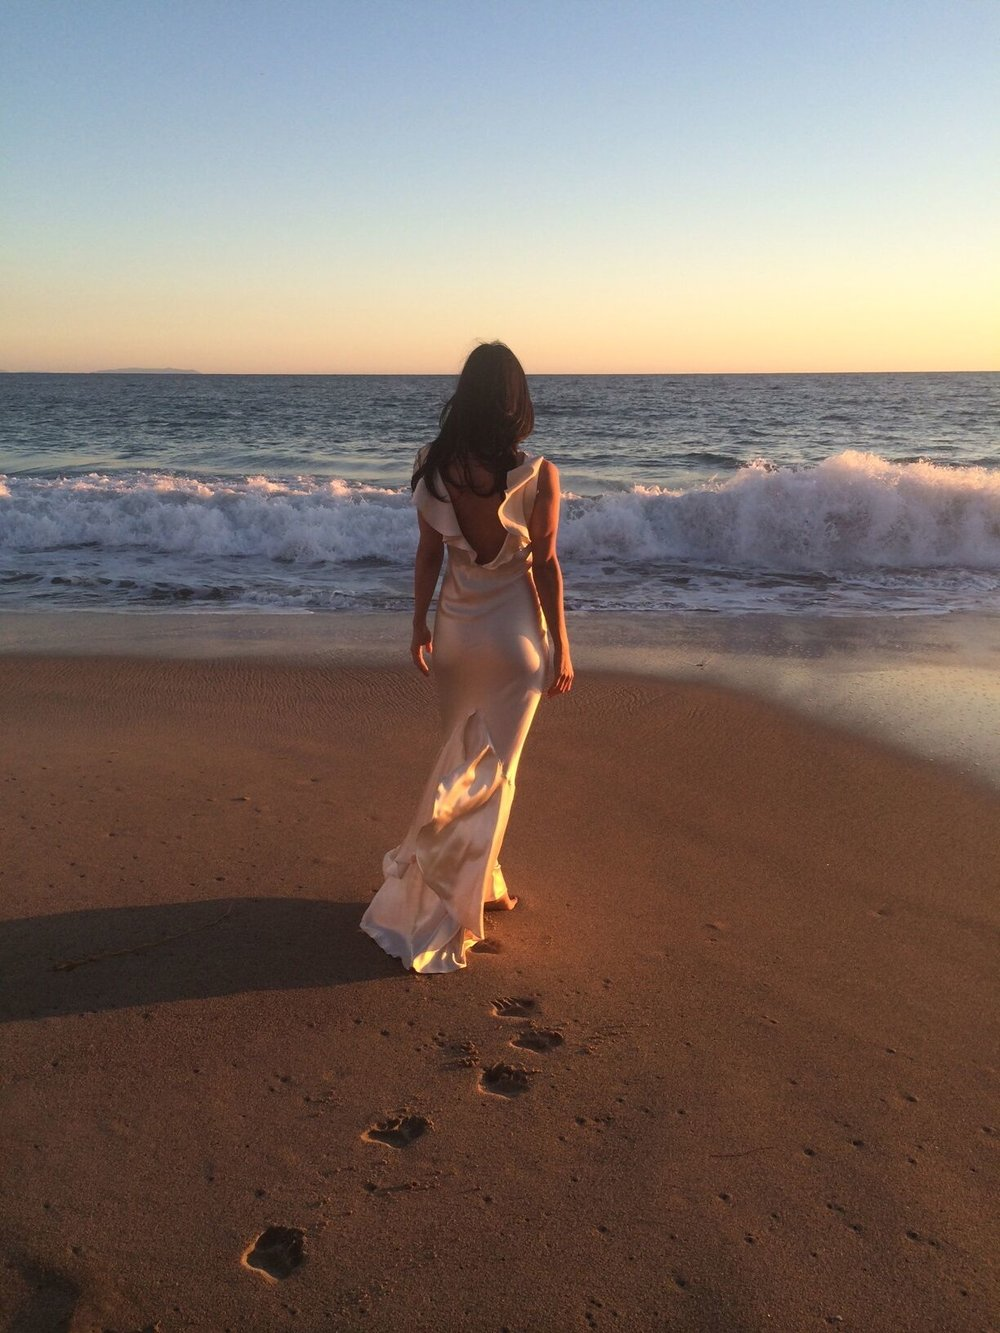 Mandana_preview.jpeg